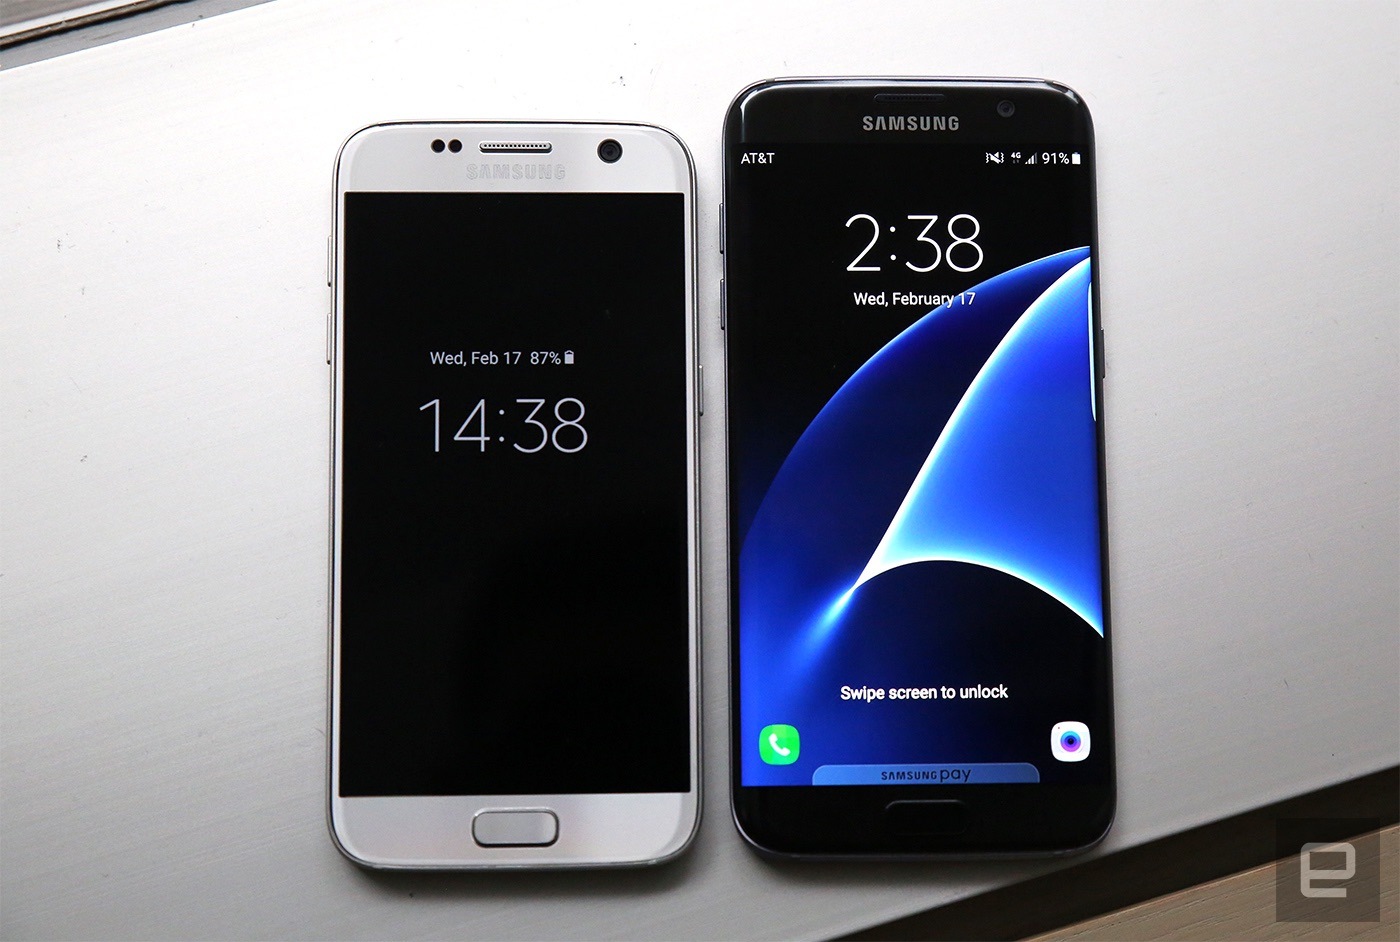 The Galaxy S7 and S7 Edge are beautiful, unsurprising sequels